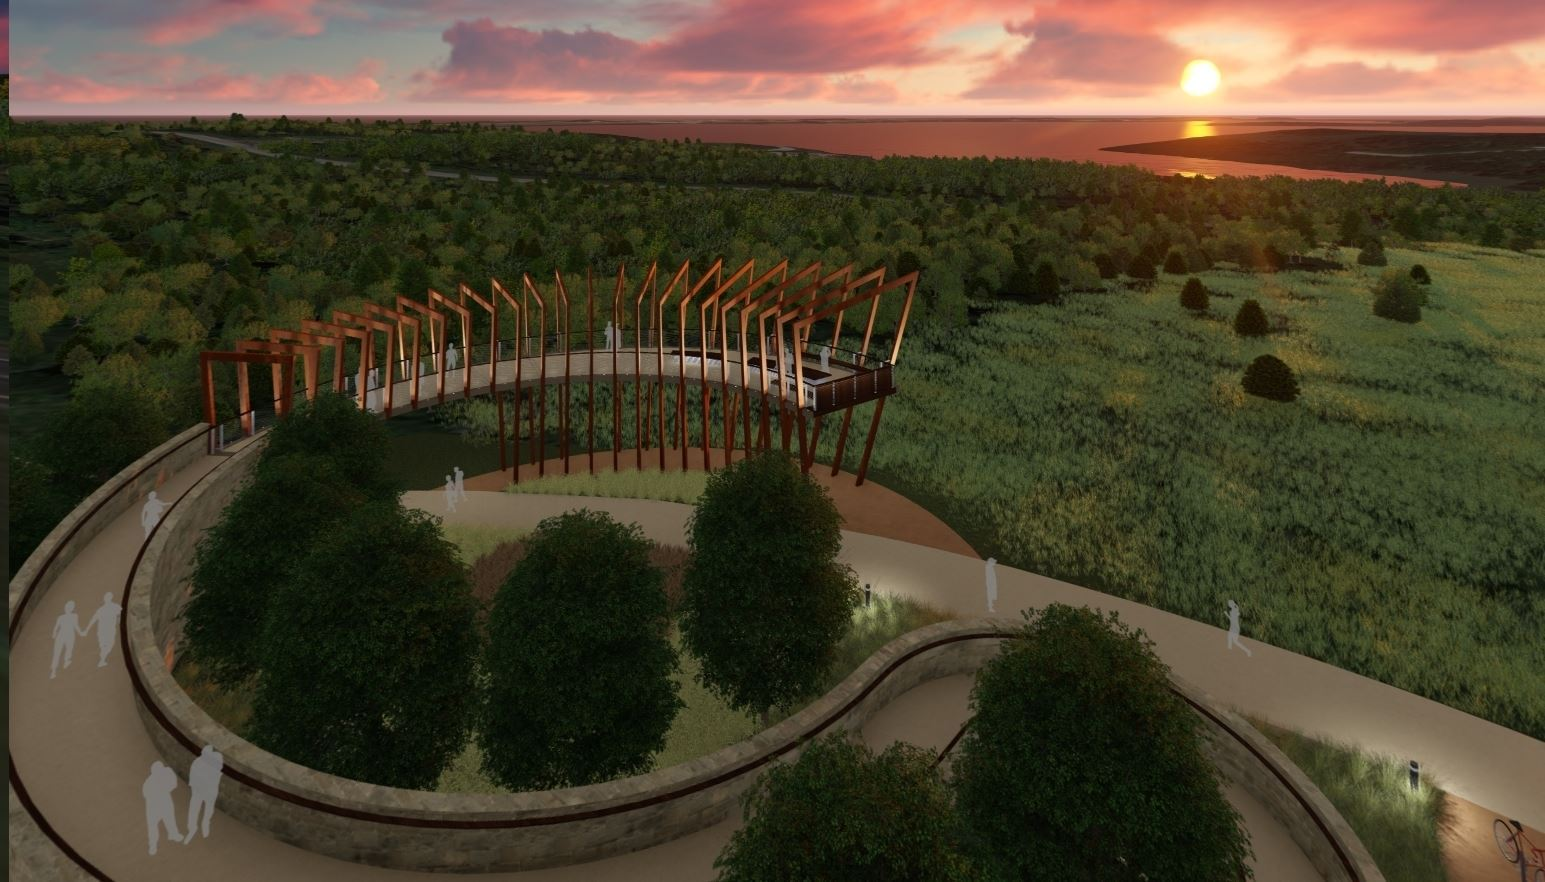 Artist Rendering of Overlook at Sunset